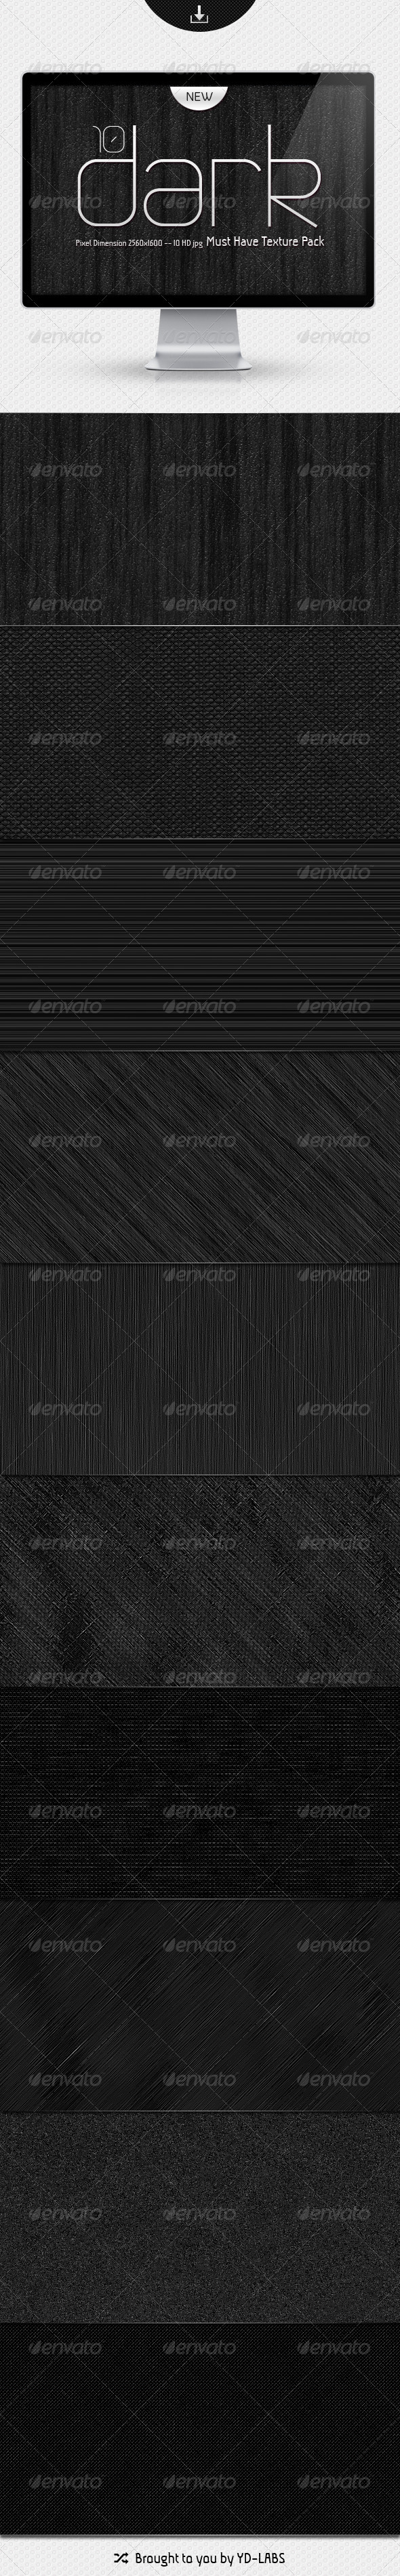 10 Dark Must Have Textures Pack - Patterns Backgrounds